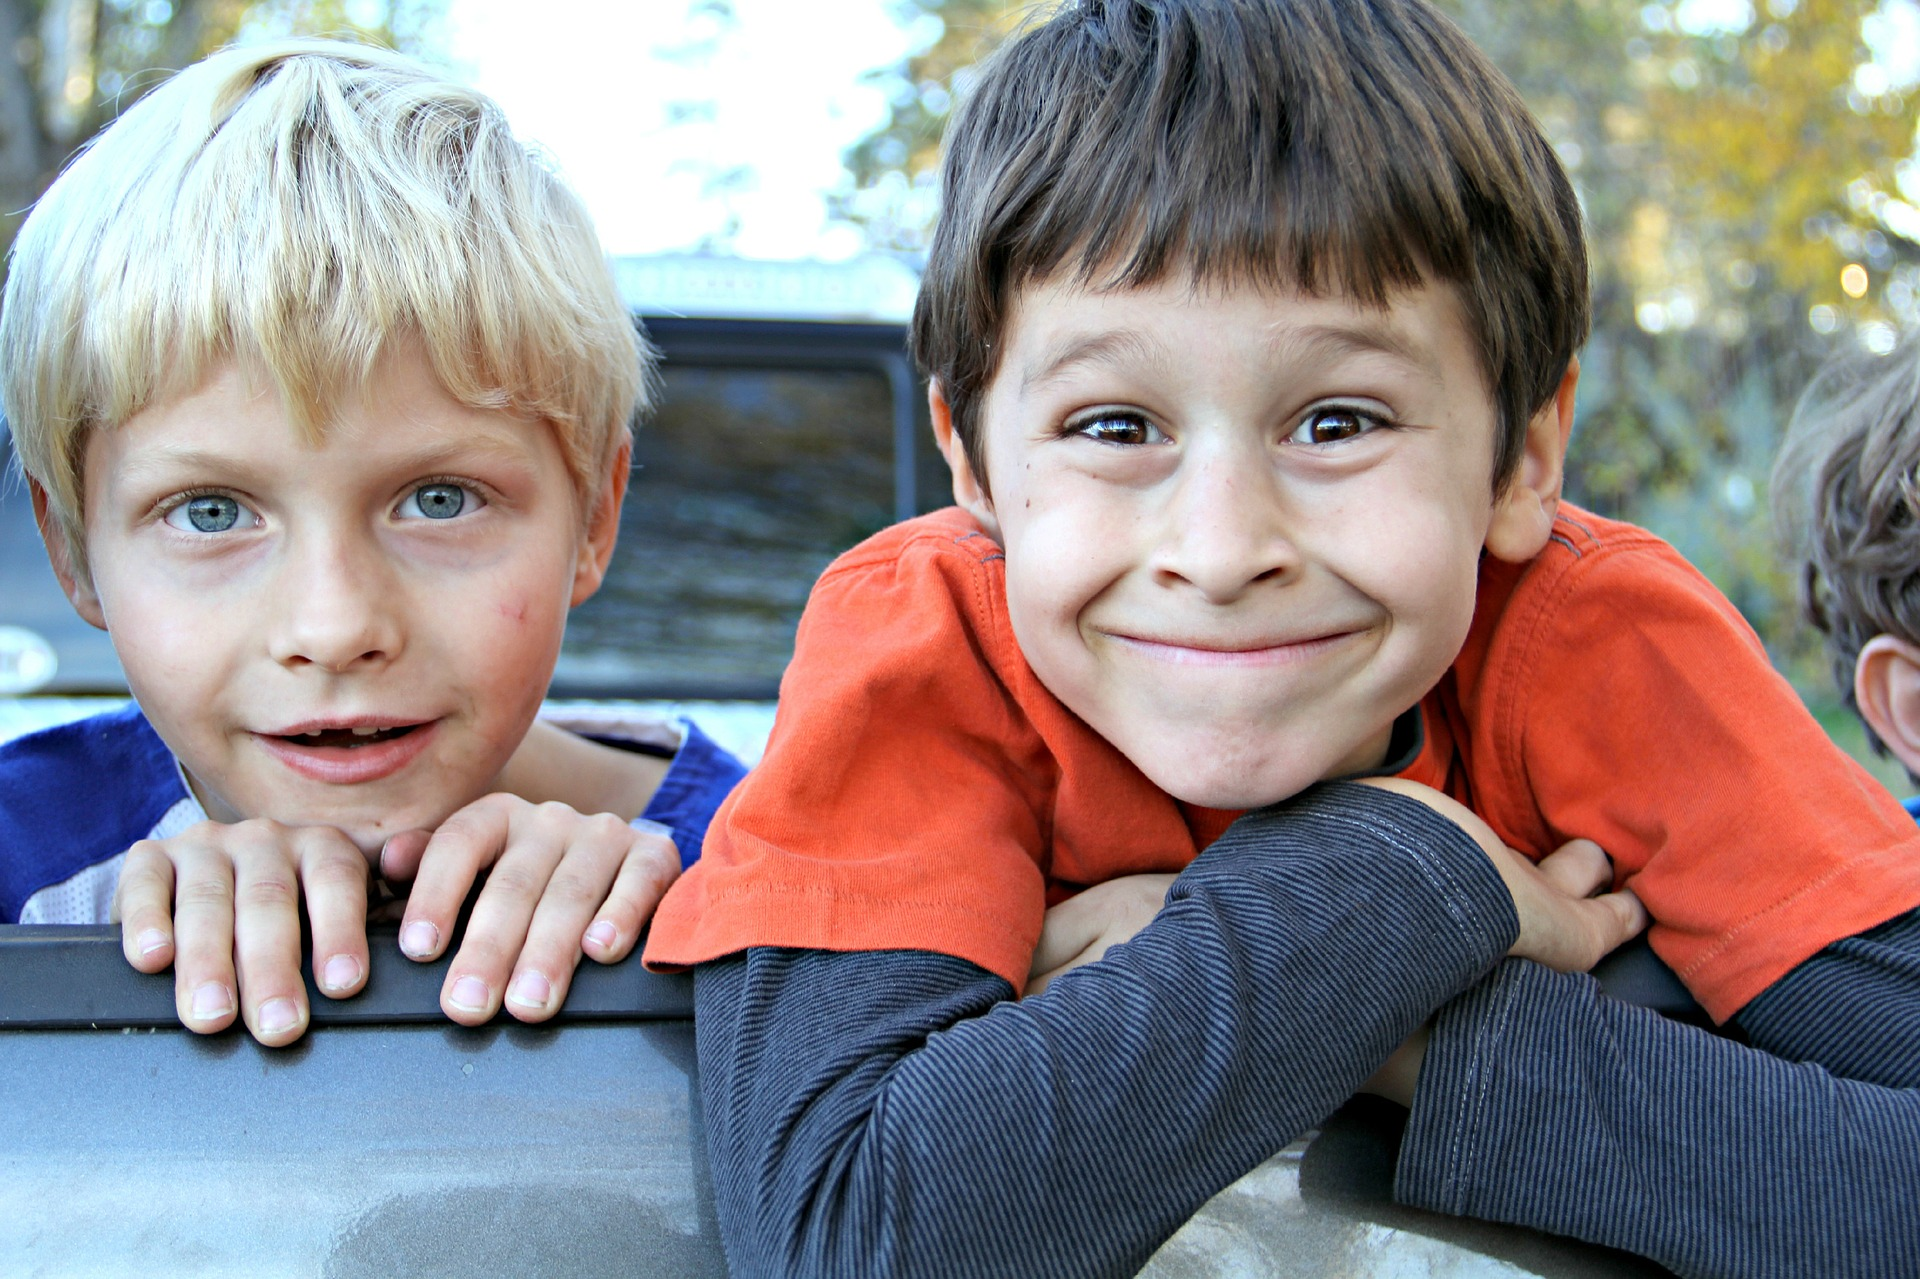 Encouraging group play can tackle bullying